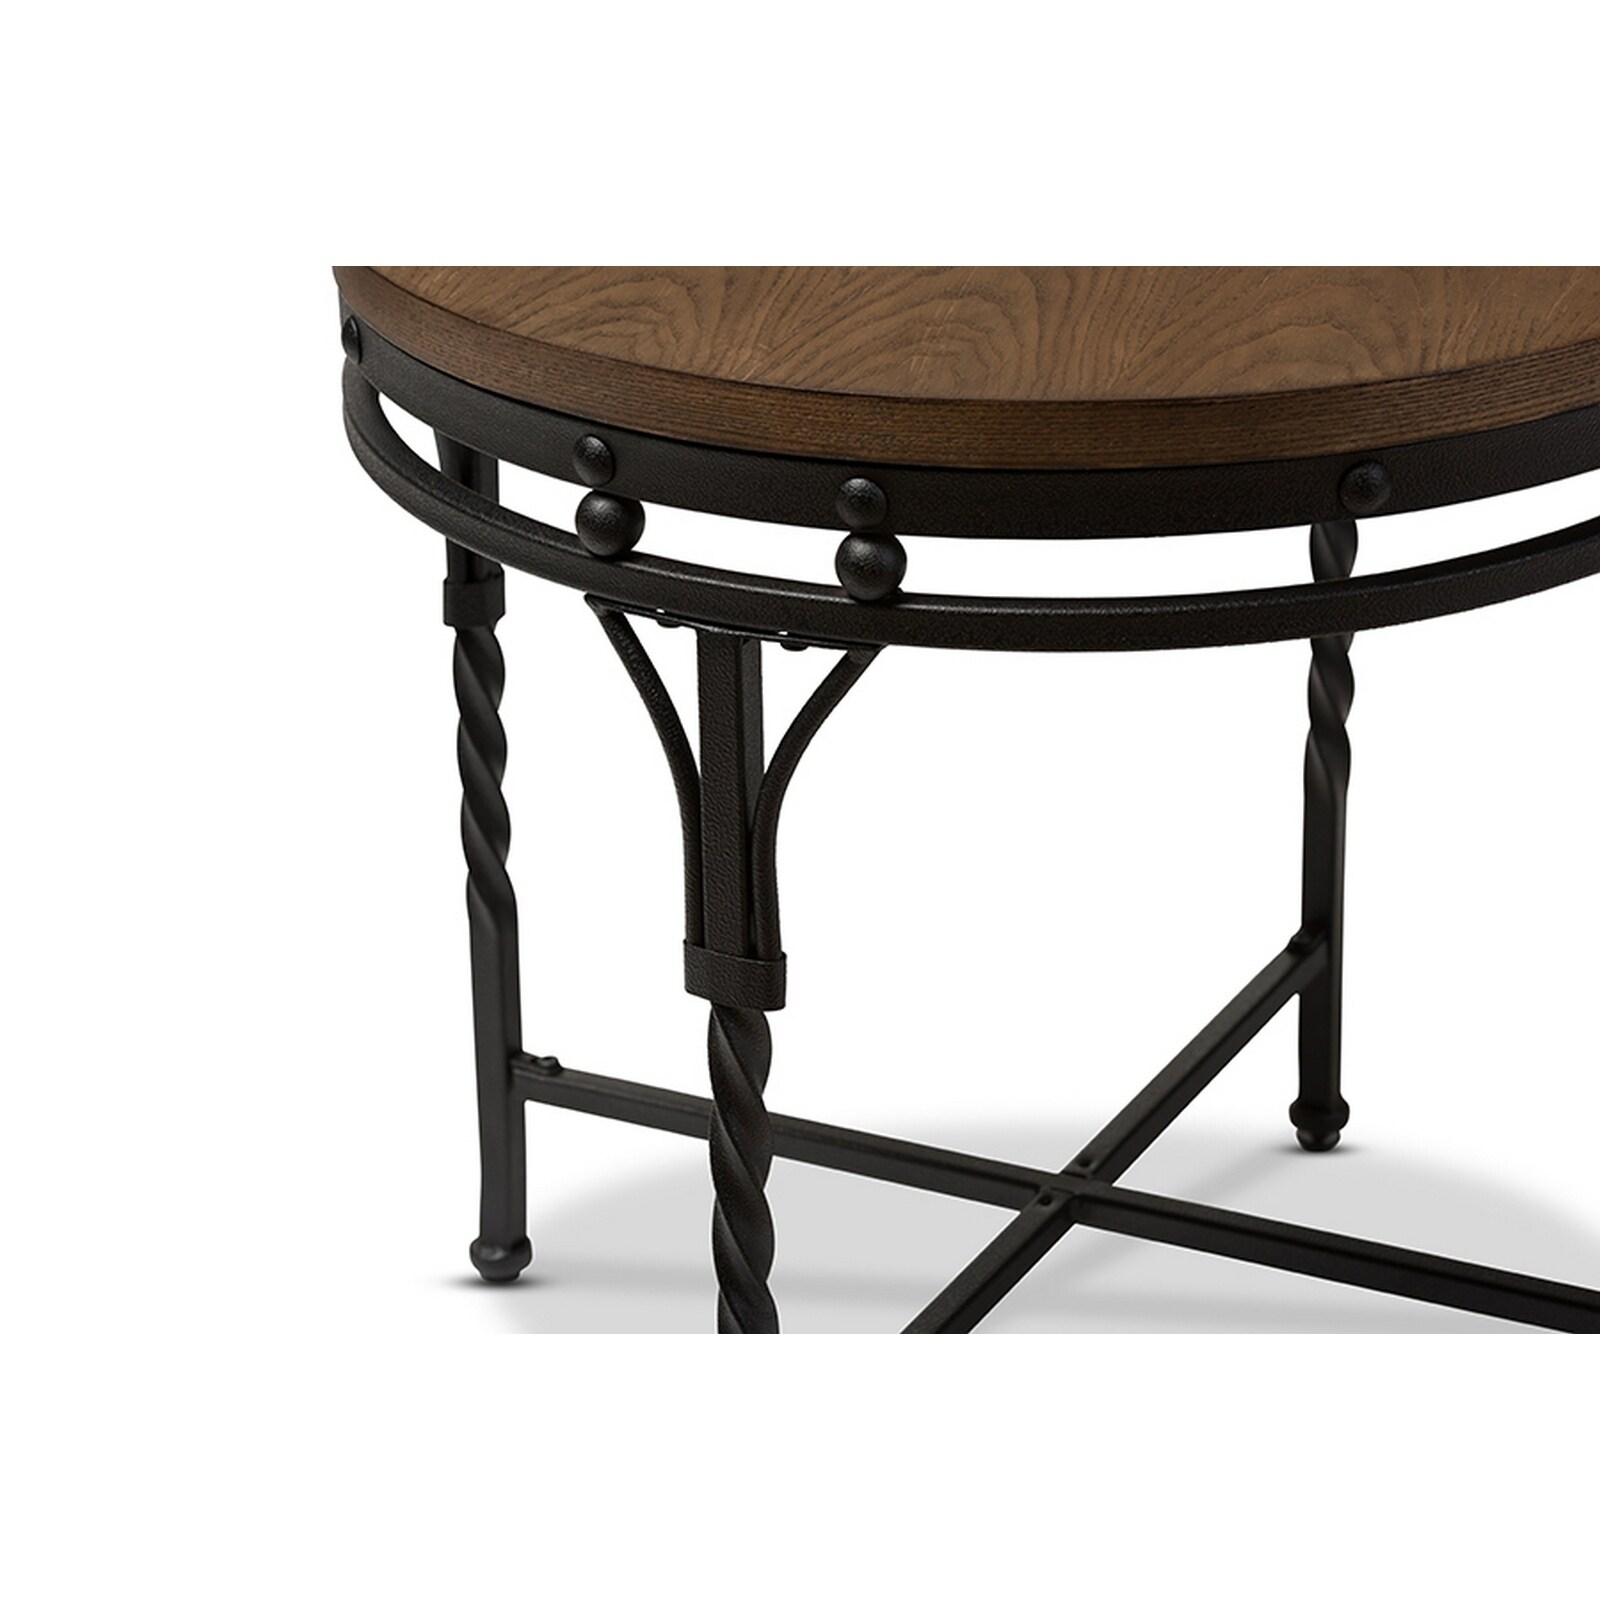 Shop Urban Designs Austin Vintage Industrial Antique Bronze Round End Table    Free Shipping Today   Overstock   21023195